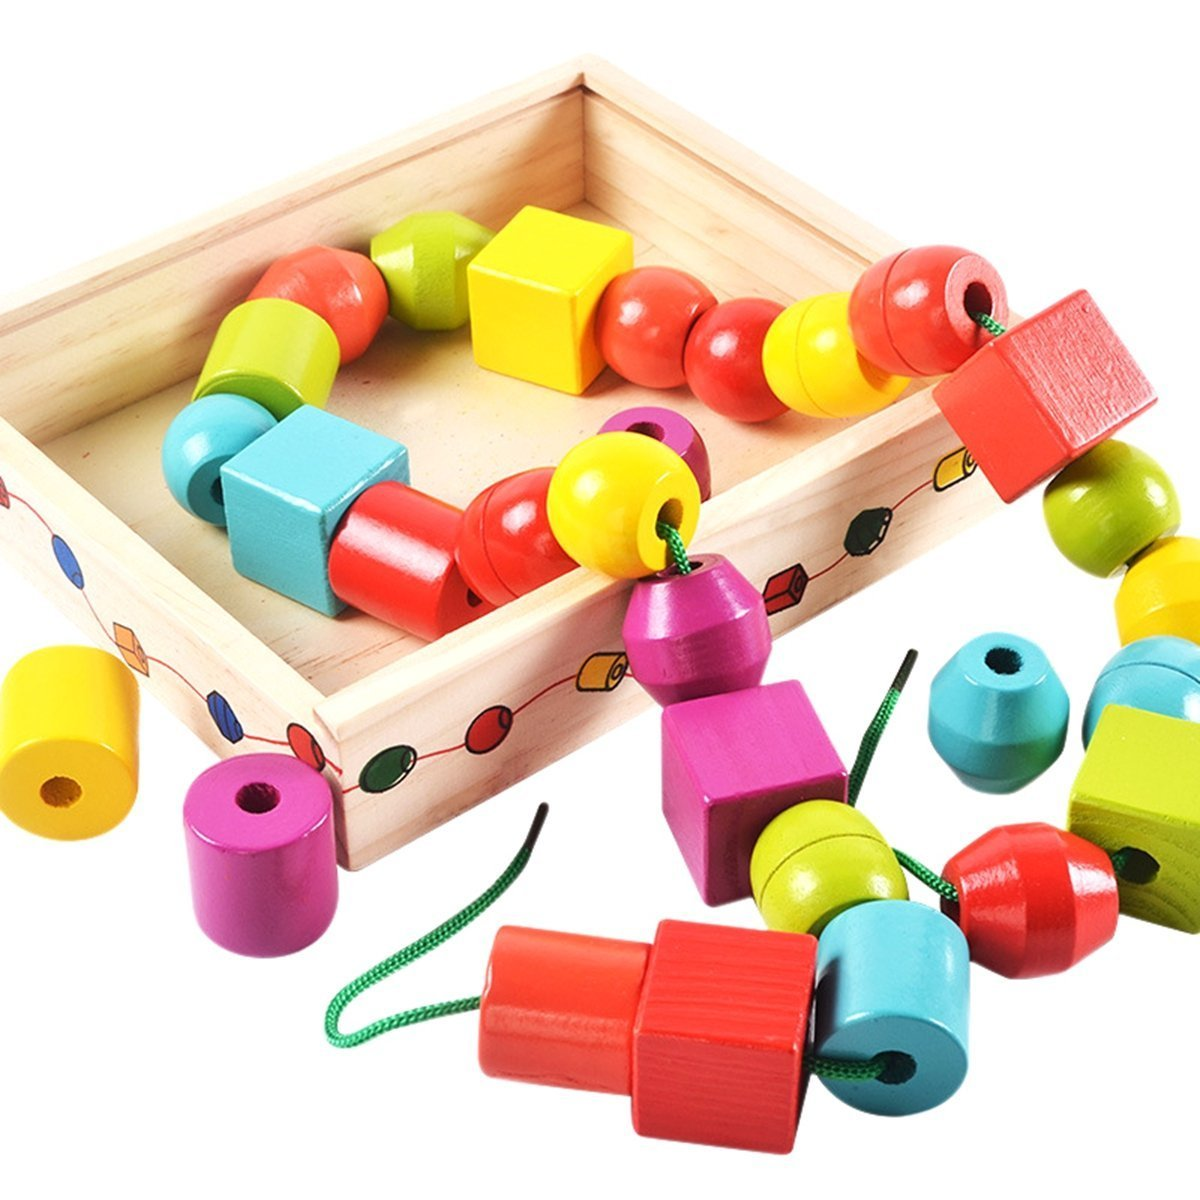 Model Building Wooden Diy City String Rope Toy For Children Educational Wear Beads Games Colorful Wood Building Block Set Montessori Toys Gifts Toys & Hobbies